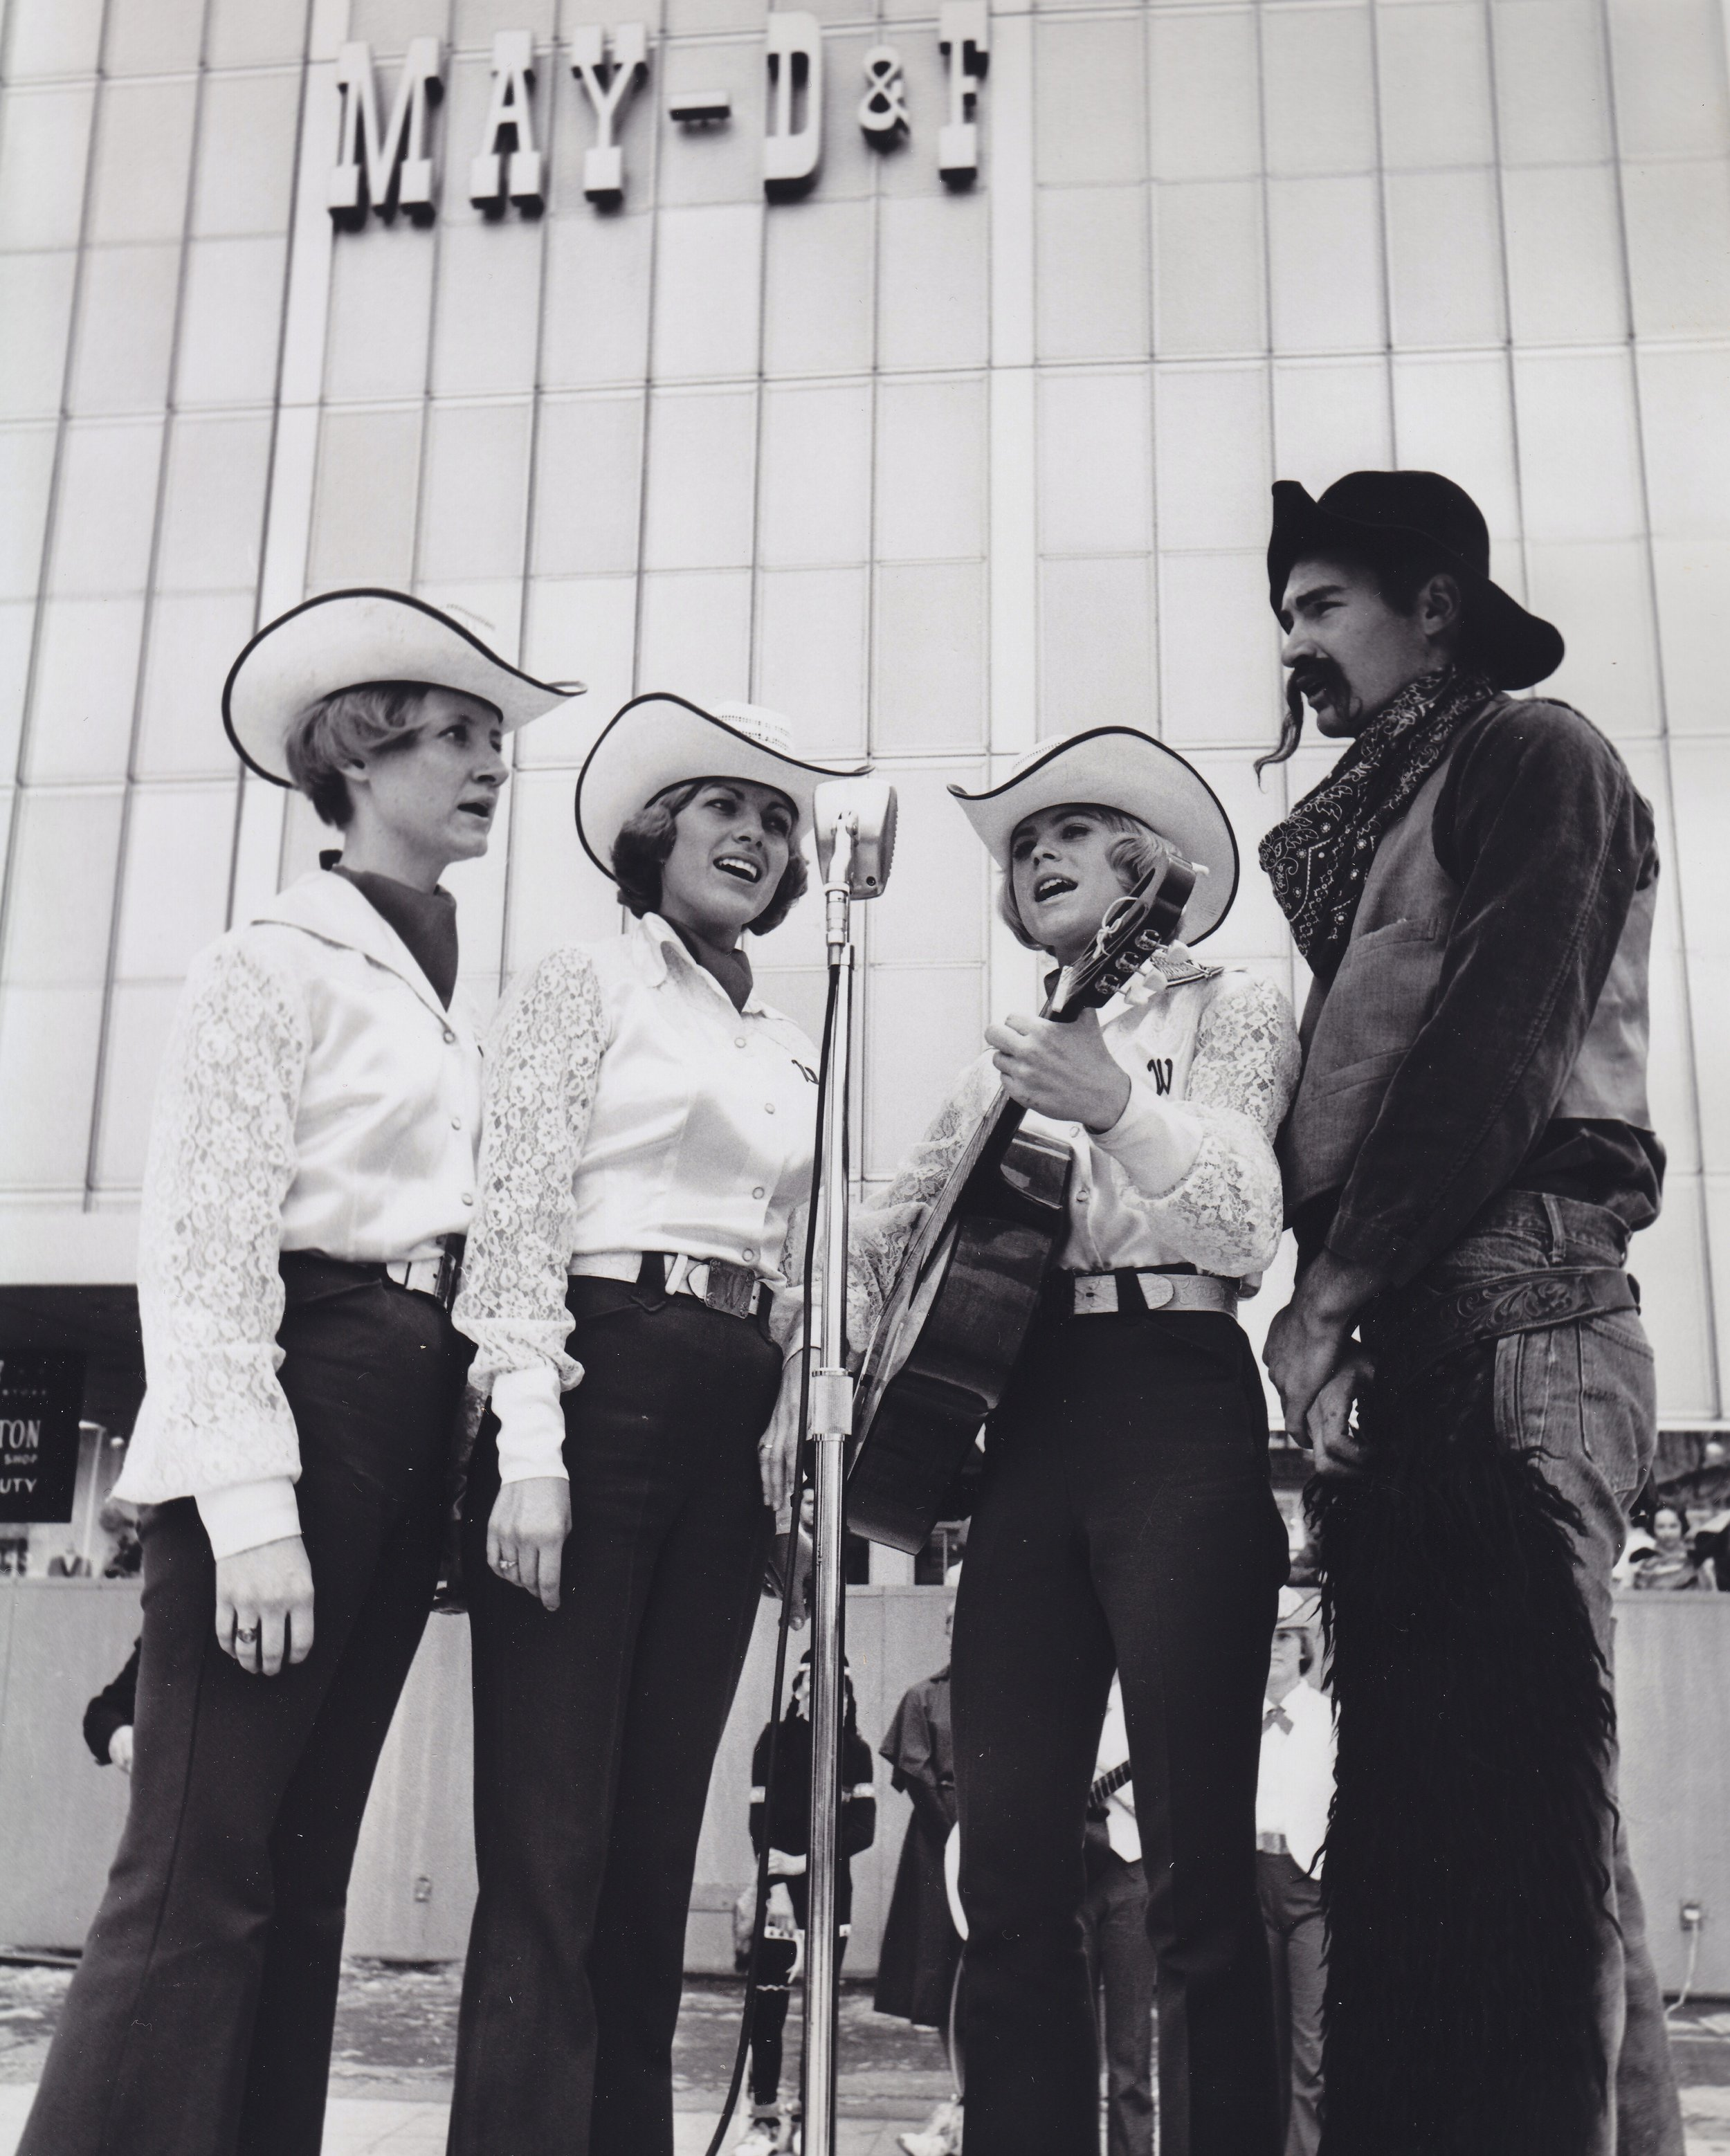 Not only are they great in the arena!  Westernaires specialty acts were tapped to perform a stage show on Denver's 16th Street - on top of the May D&F ice skating rink.  A Westernaires quartet entertains the audience on Denver's 16th Street on January 21st, 1967.